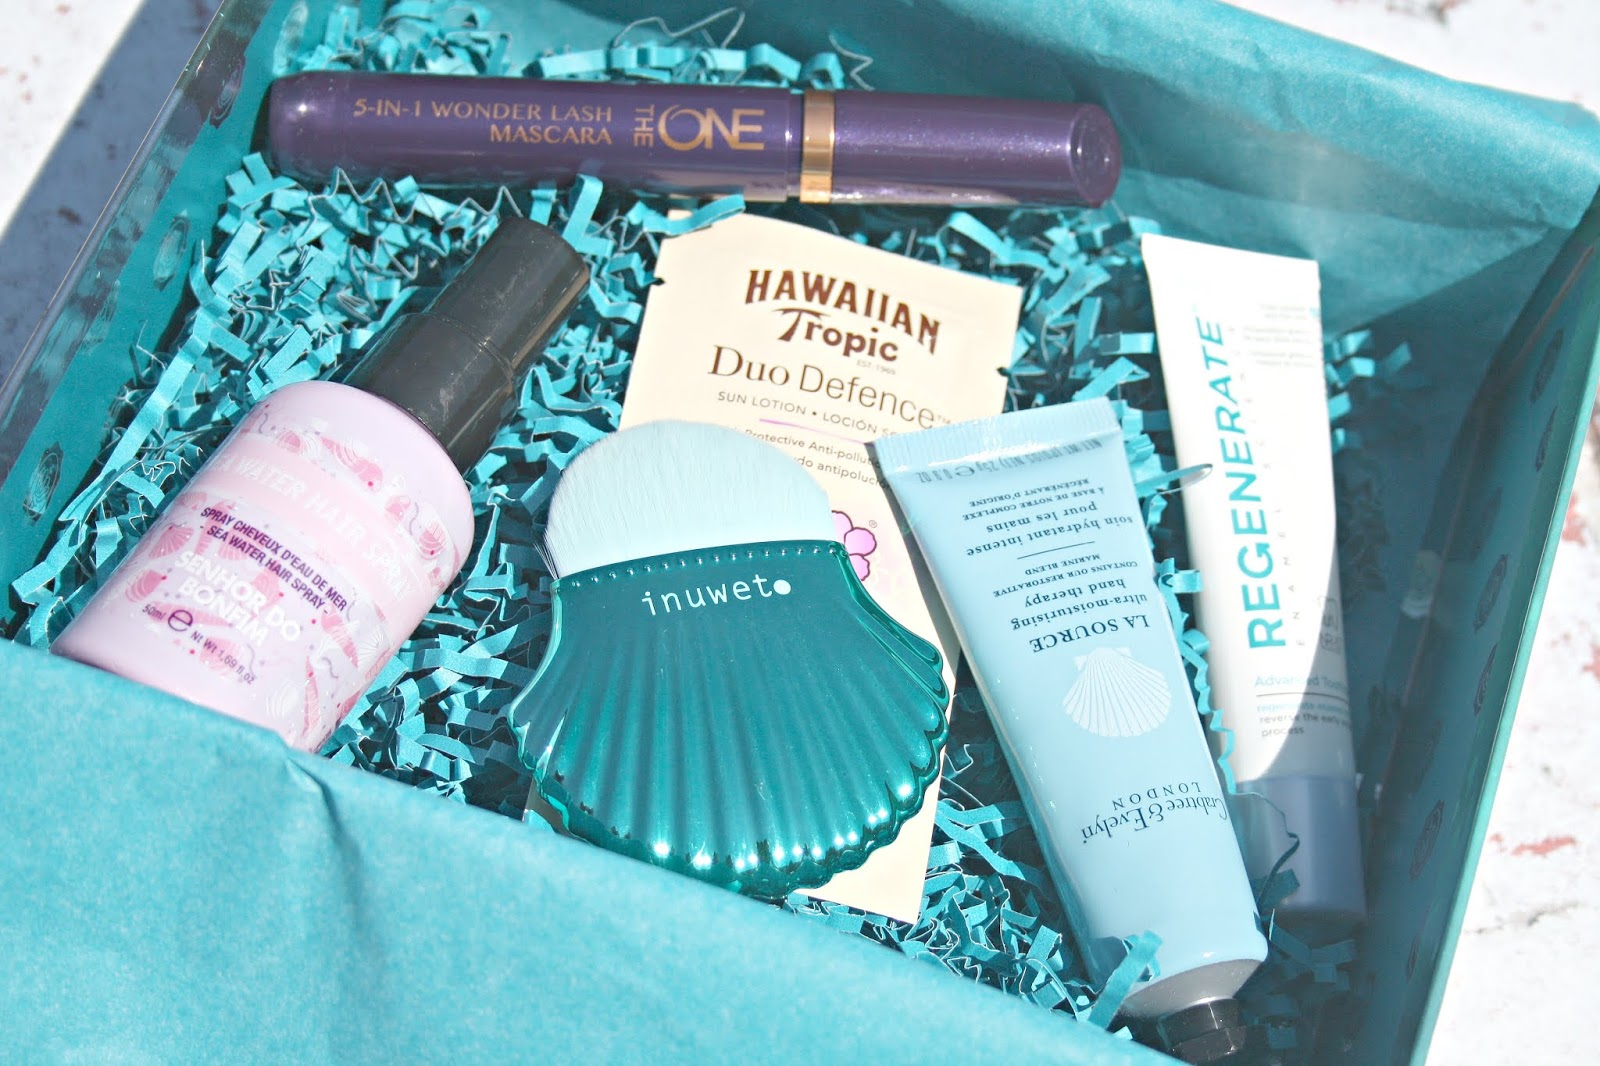 Glossybox Under The Sea July Edition Beauty Queen Uk Bloglovin Holiday Series Hawaii Breeze 200ml Senhor Do Bonfim Water Hair Spray 16 A Full Size Product At 50ml This Is Said To Help You Achieve Beachy Mermaid Waves